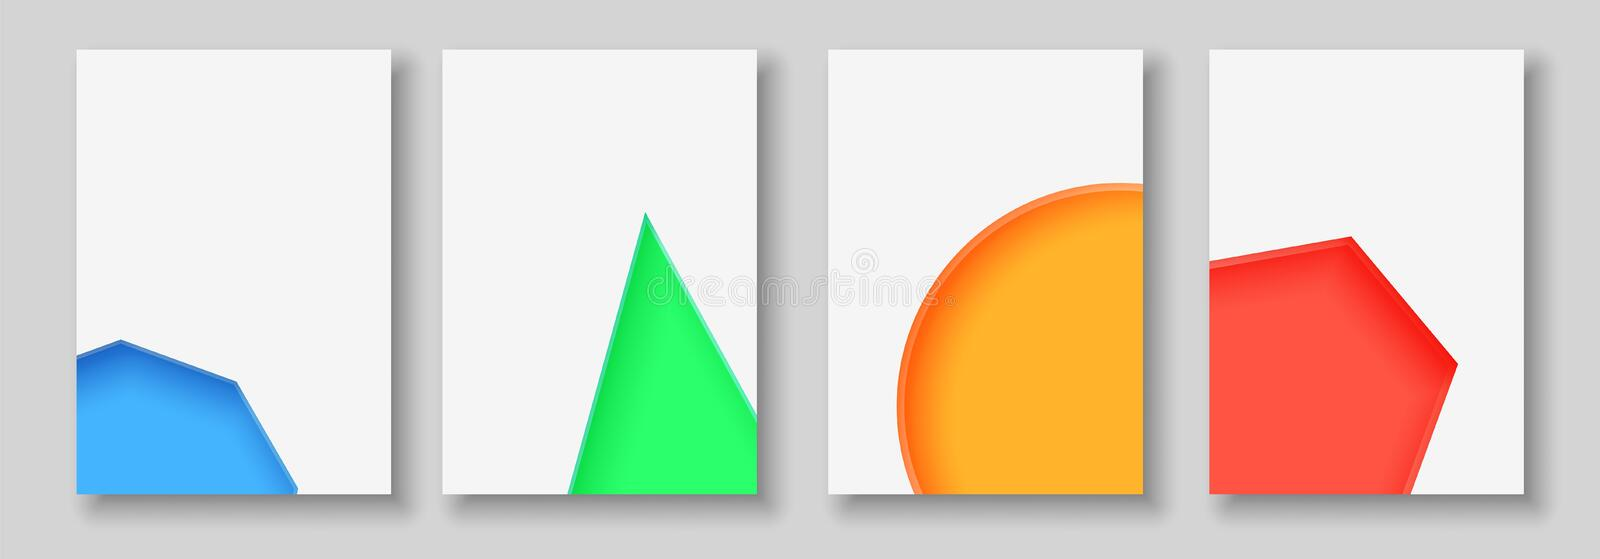 A4 abstract color 3d paper art illustration set. Contrast colors. Vector design layout for banners, presentations, flyer stock illustration